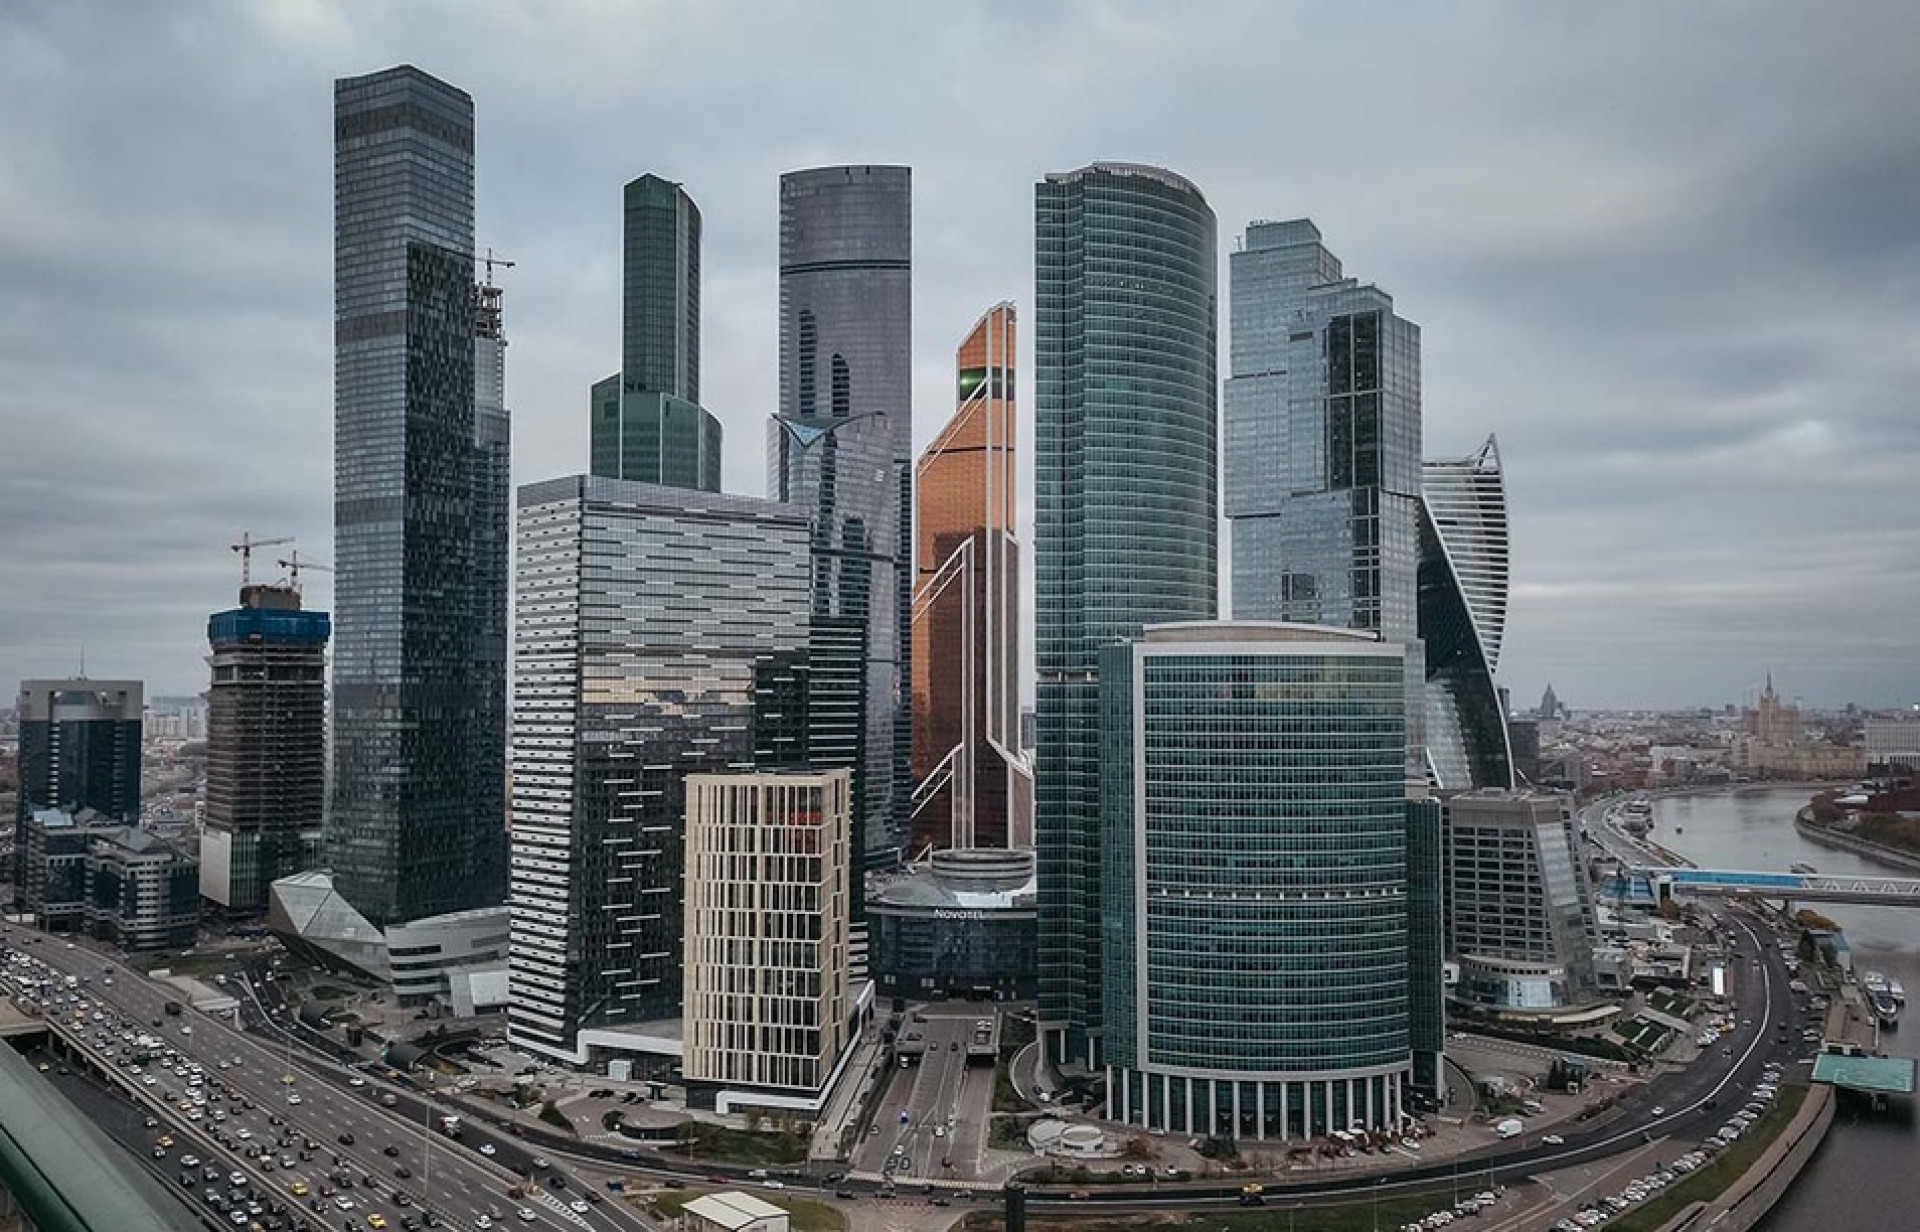 The Skyscrapers Of Moscow City In Photos